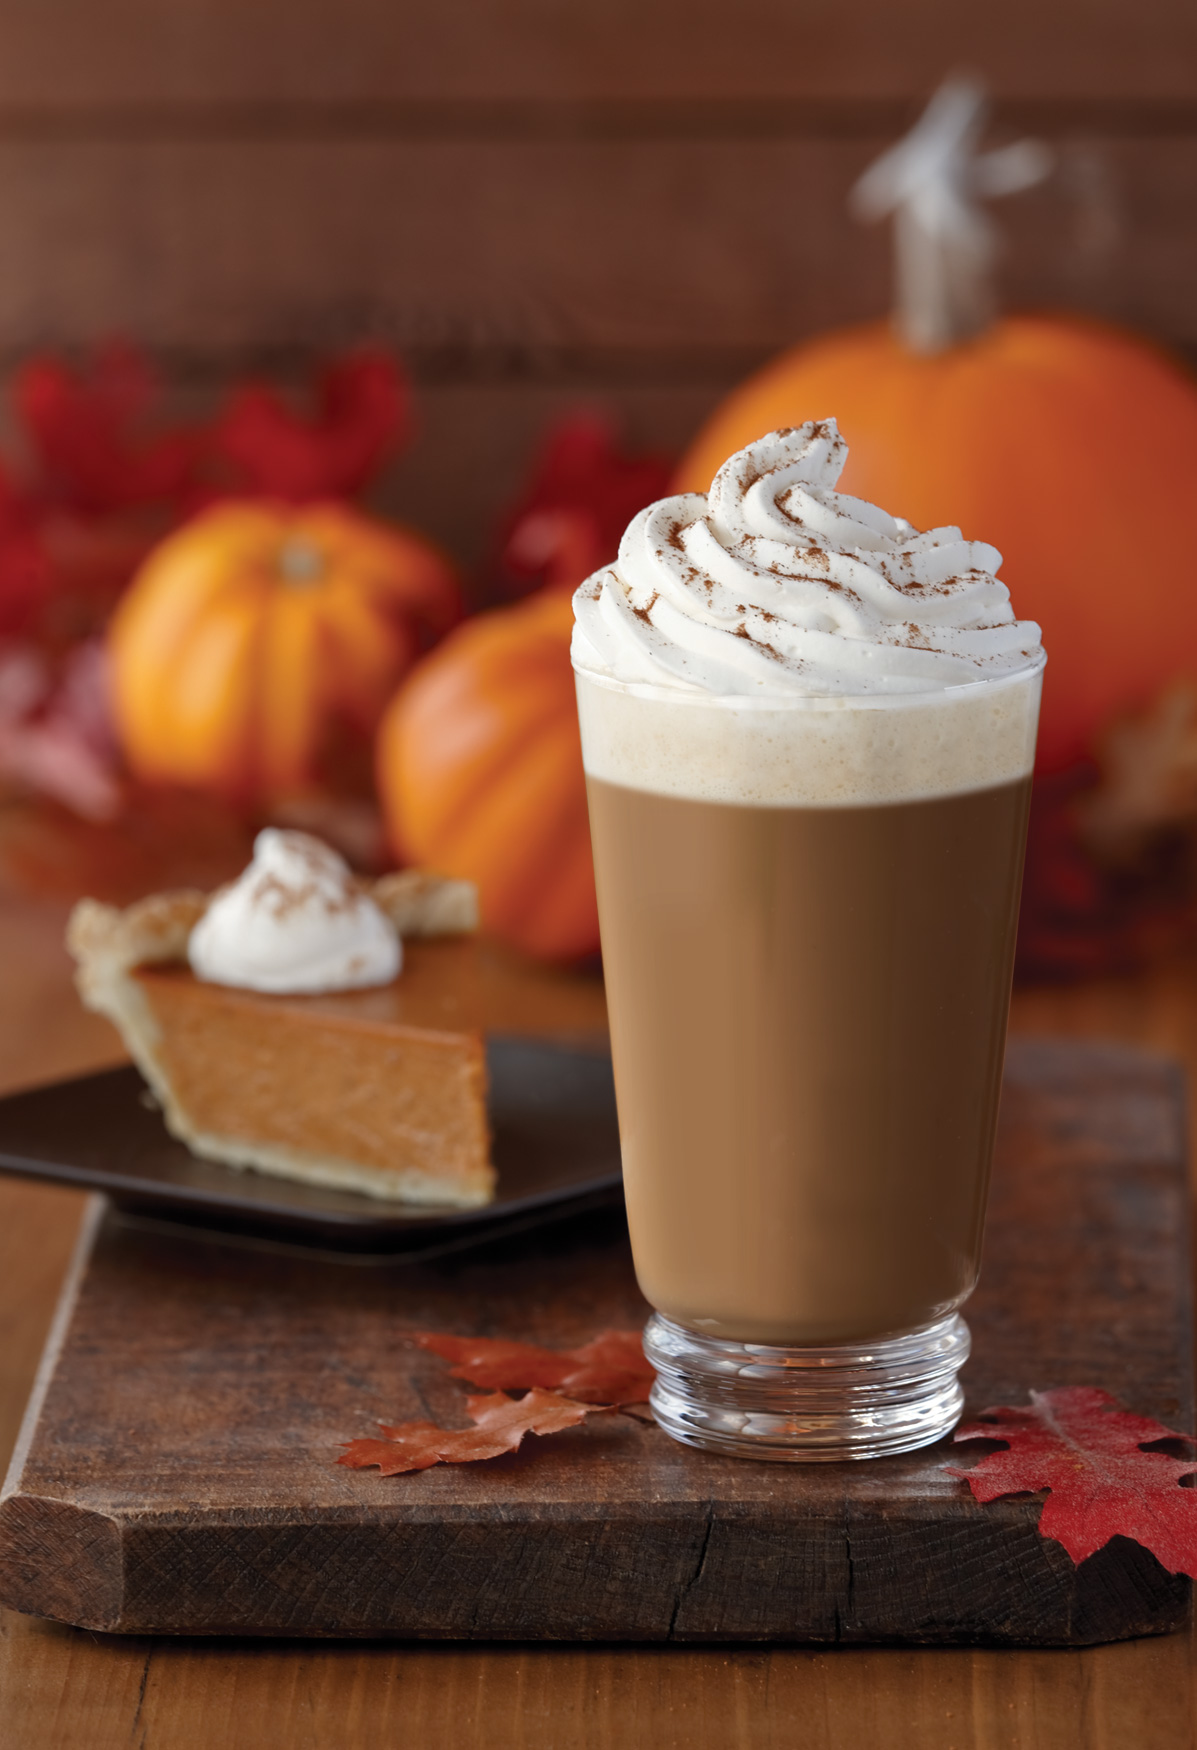 Fall Day Wallpaper Sugar Free Pumpkin Pie Latte Milk Recipes And Other